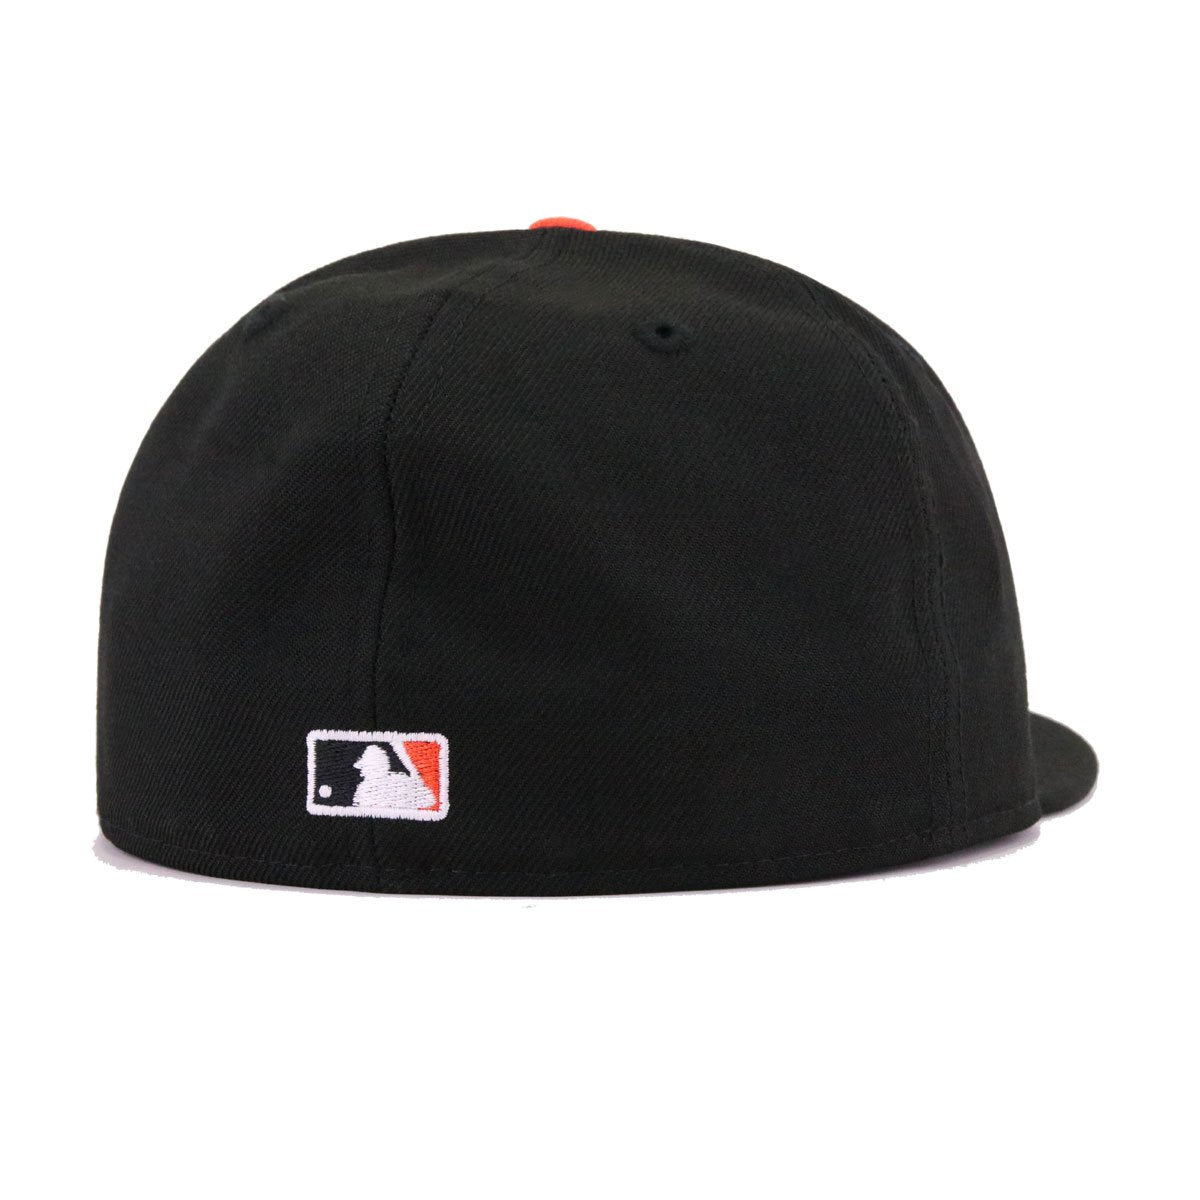 San Francisco Giants Black Grilled Orange New Era 59Fifty Fitted